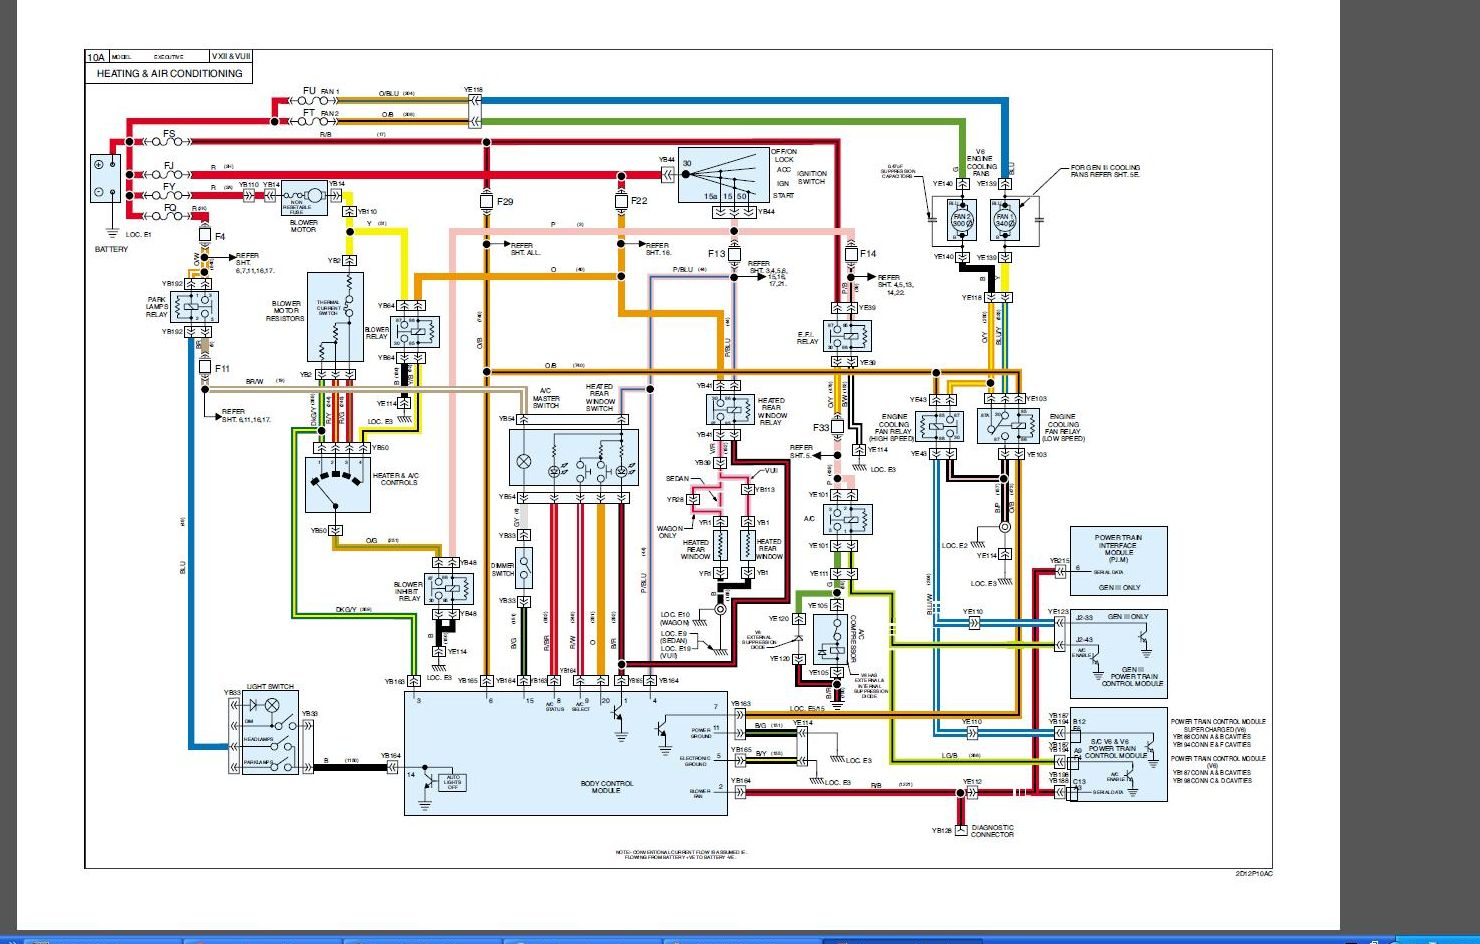 Vu commodore ute wiring diagram somurich